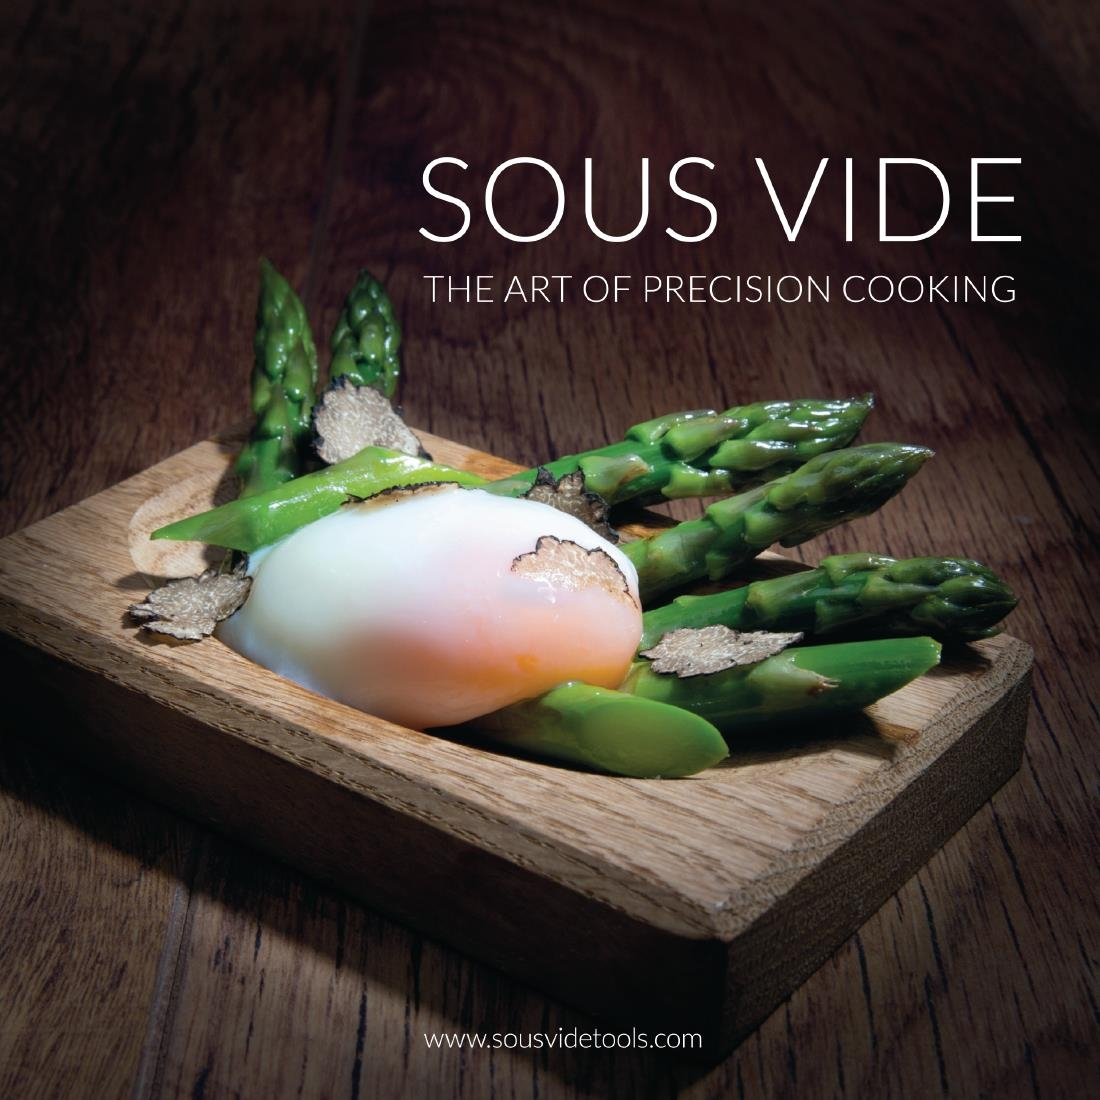 Image of Sous Vide - The Art of Precision Cooking